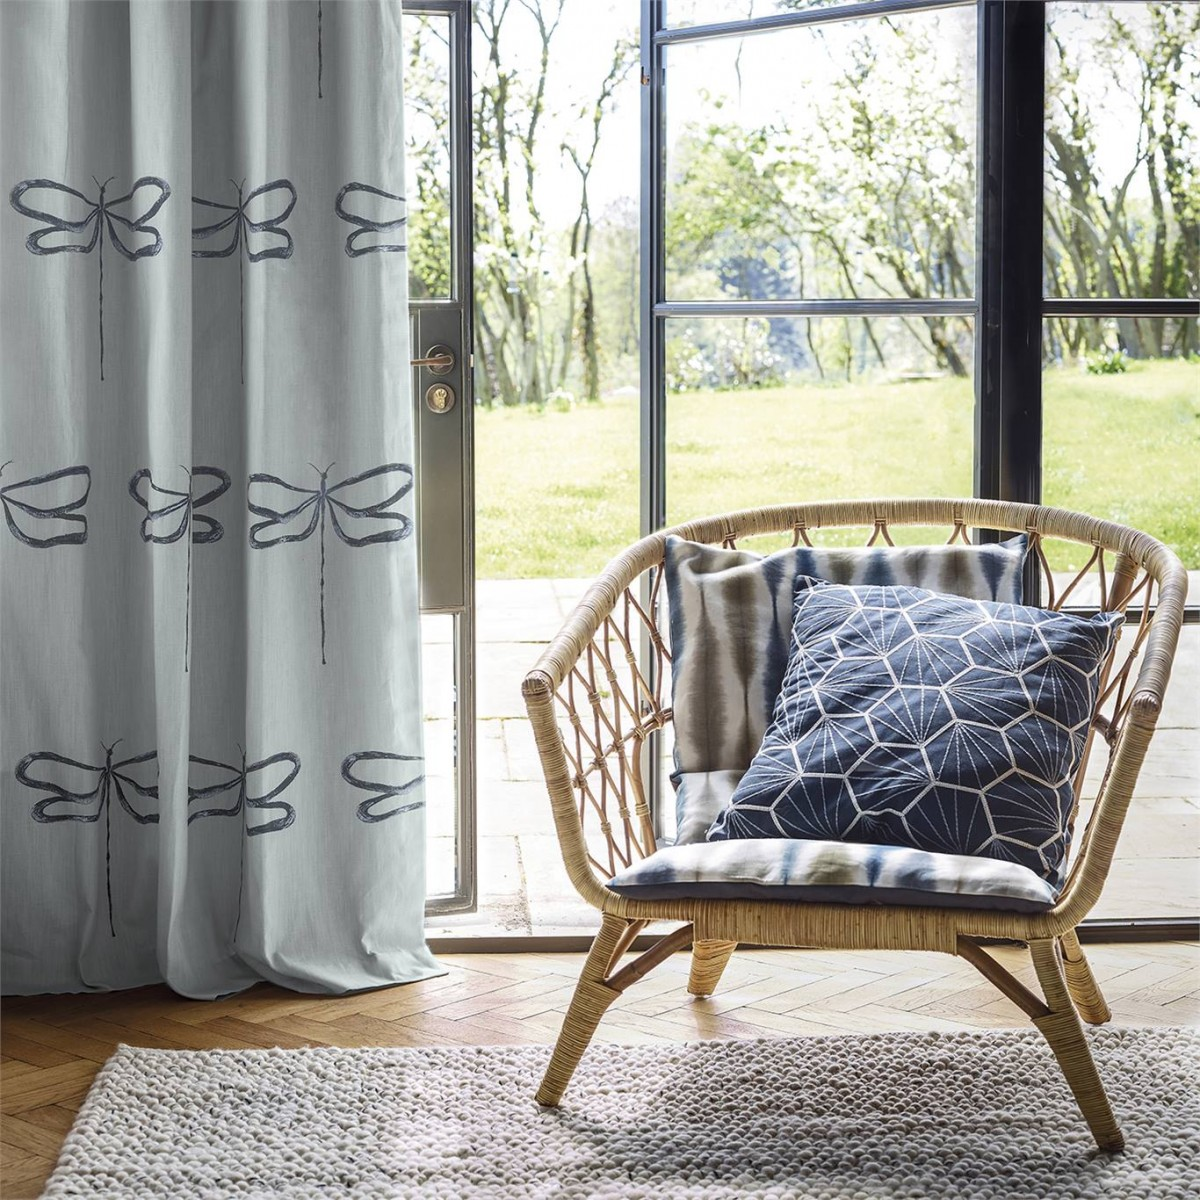 Curtains made from Scion Dragonfly fabric